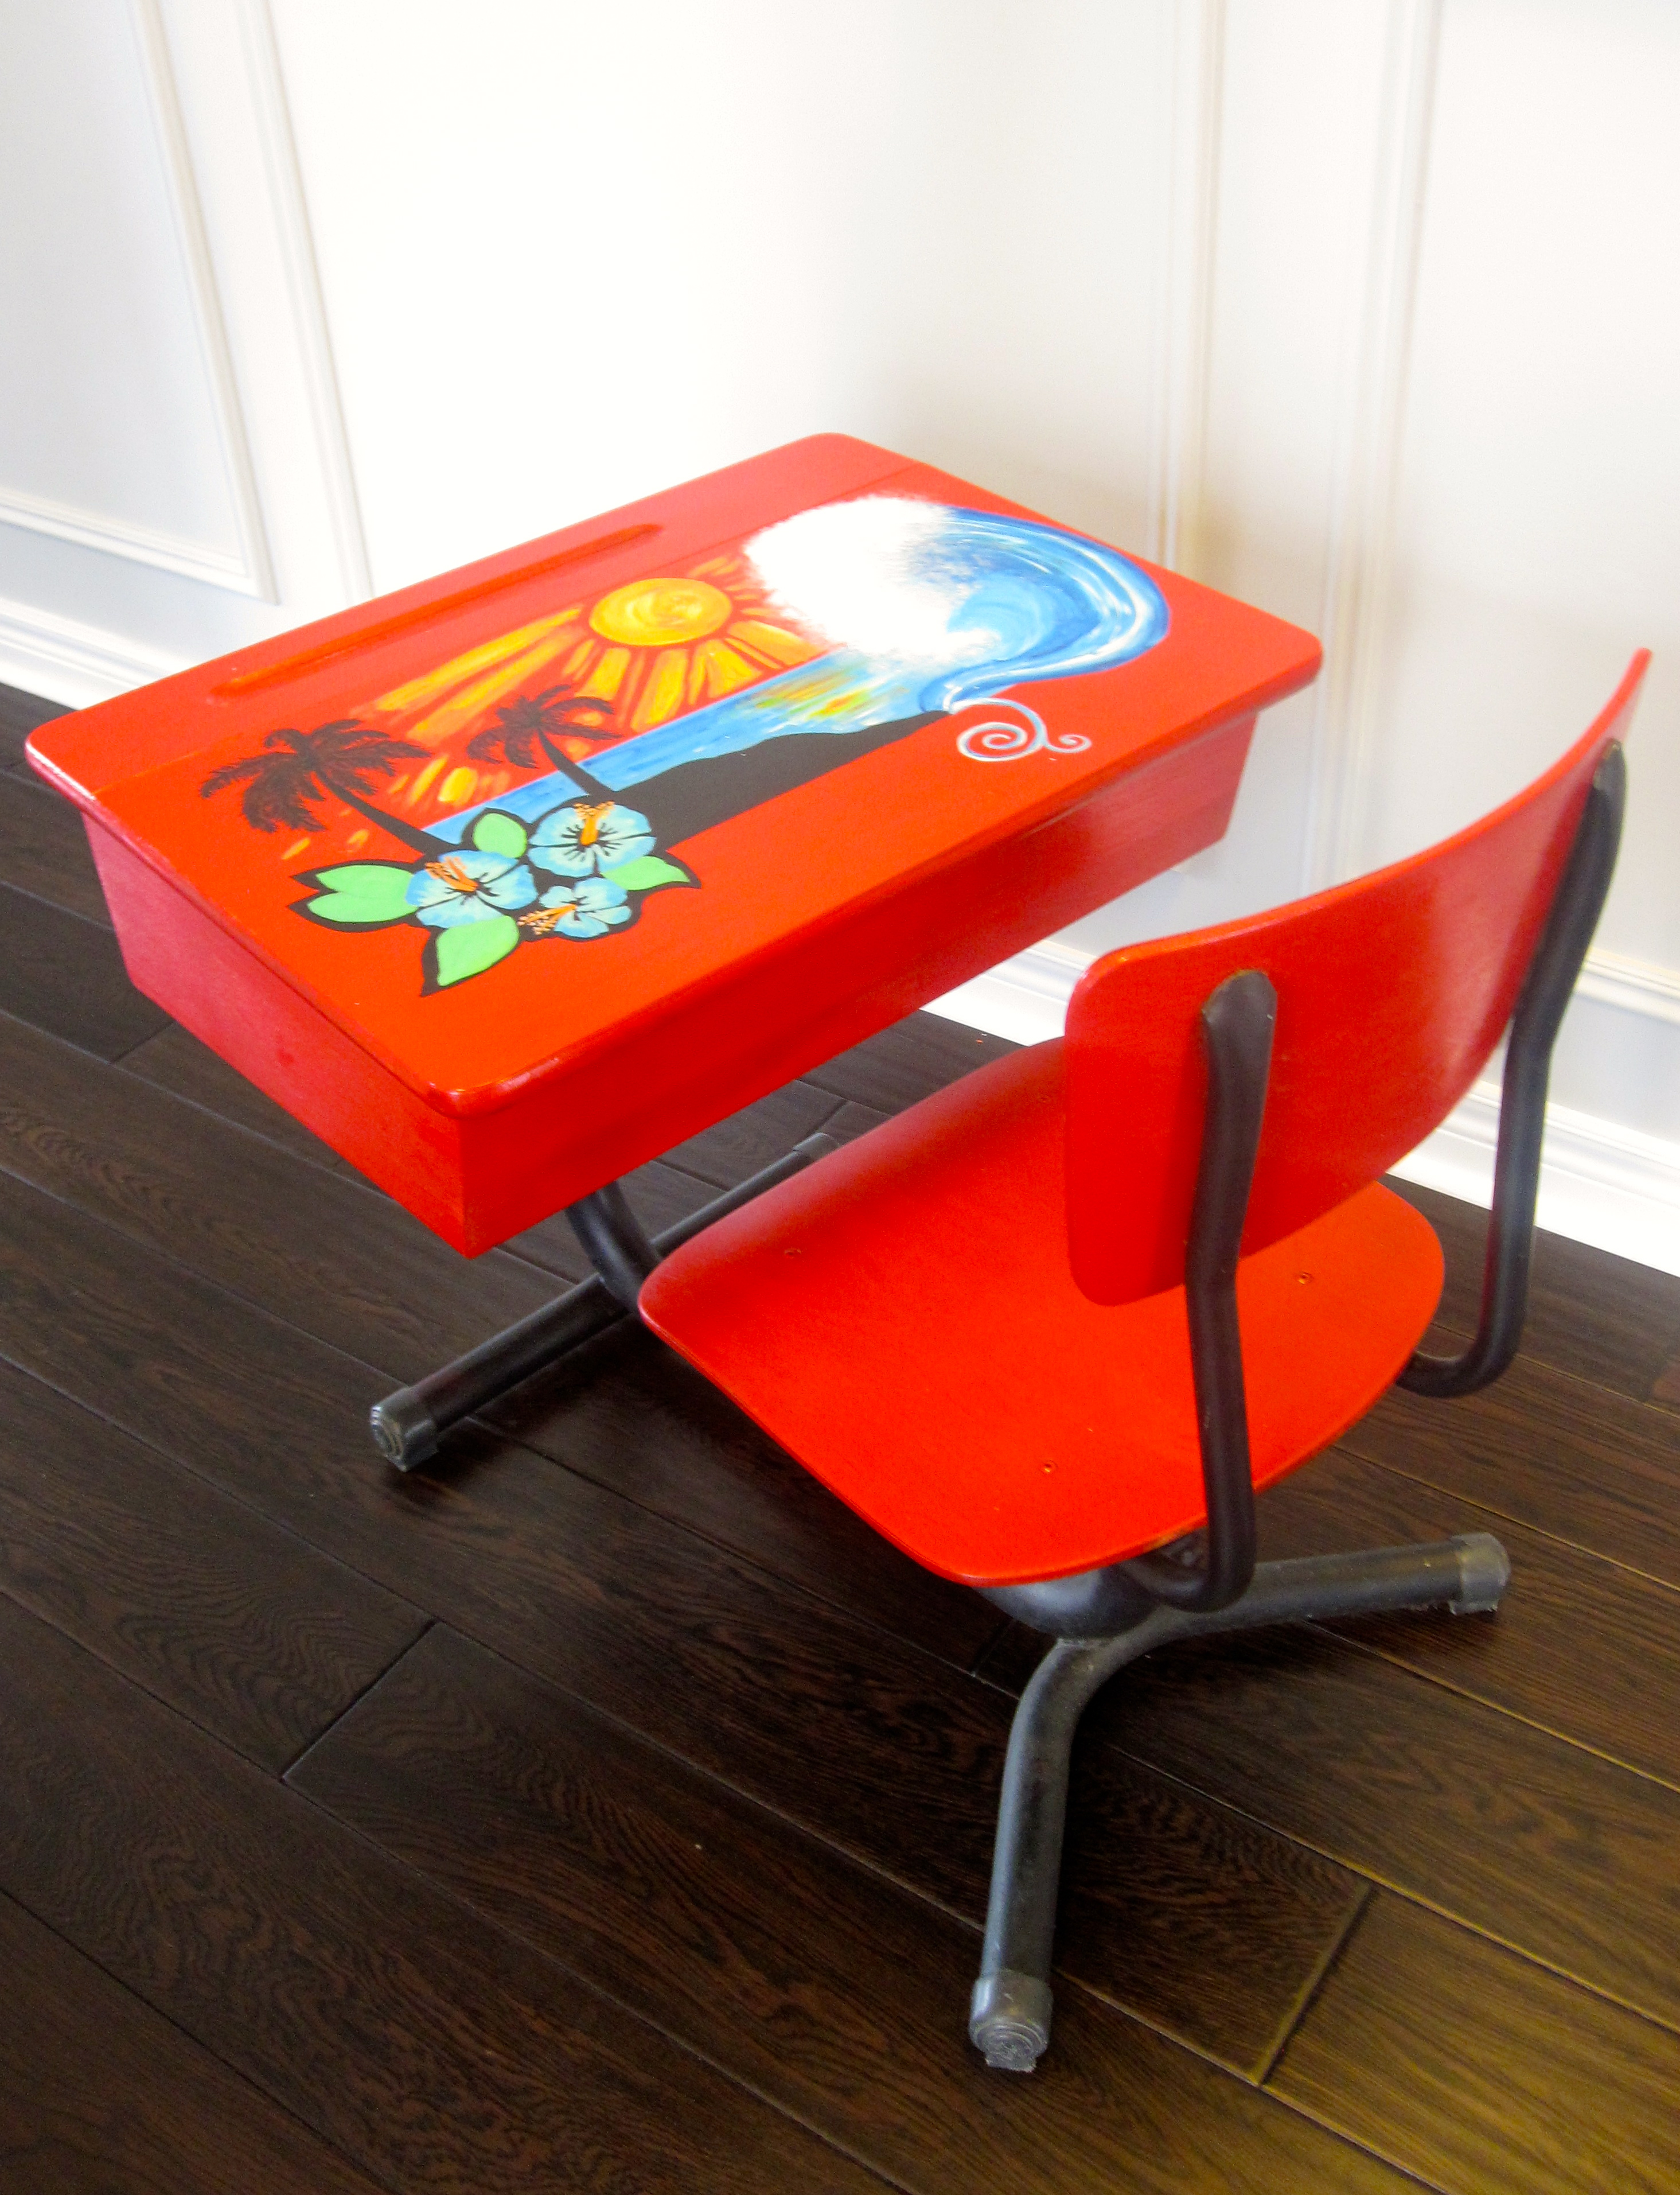 old fashioned birthing chairs knoll pollock chair an school desk is given a fresh surf look with hand